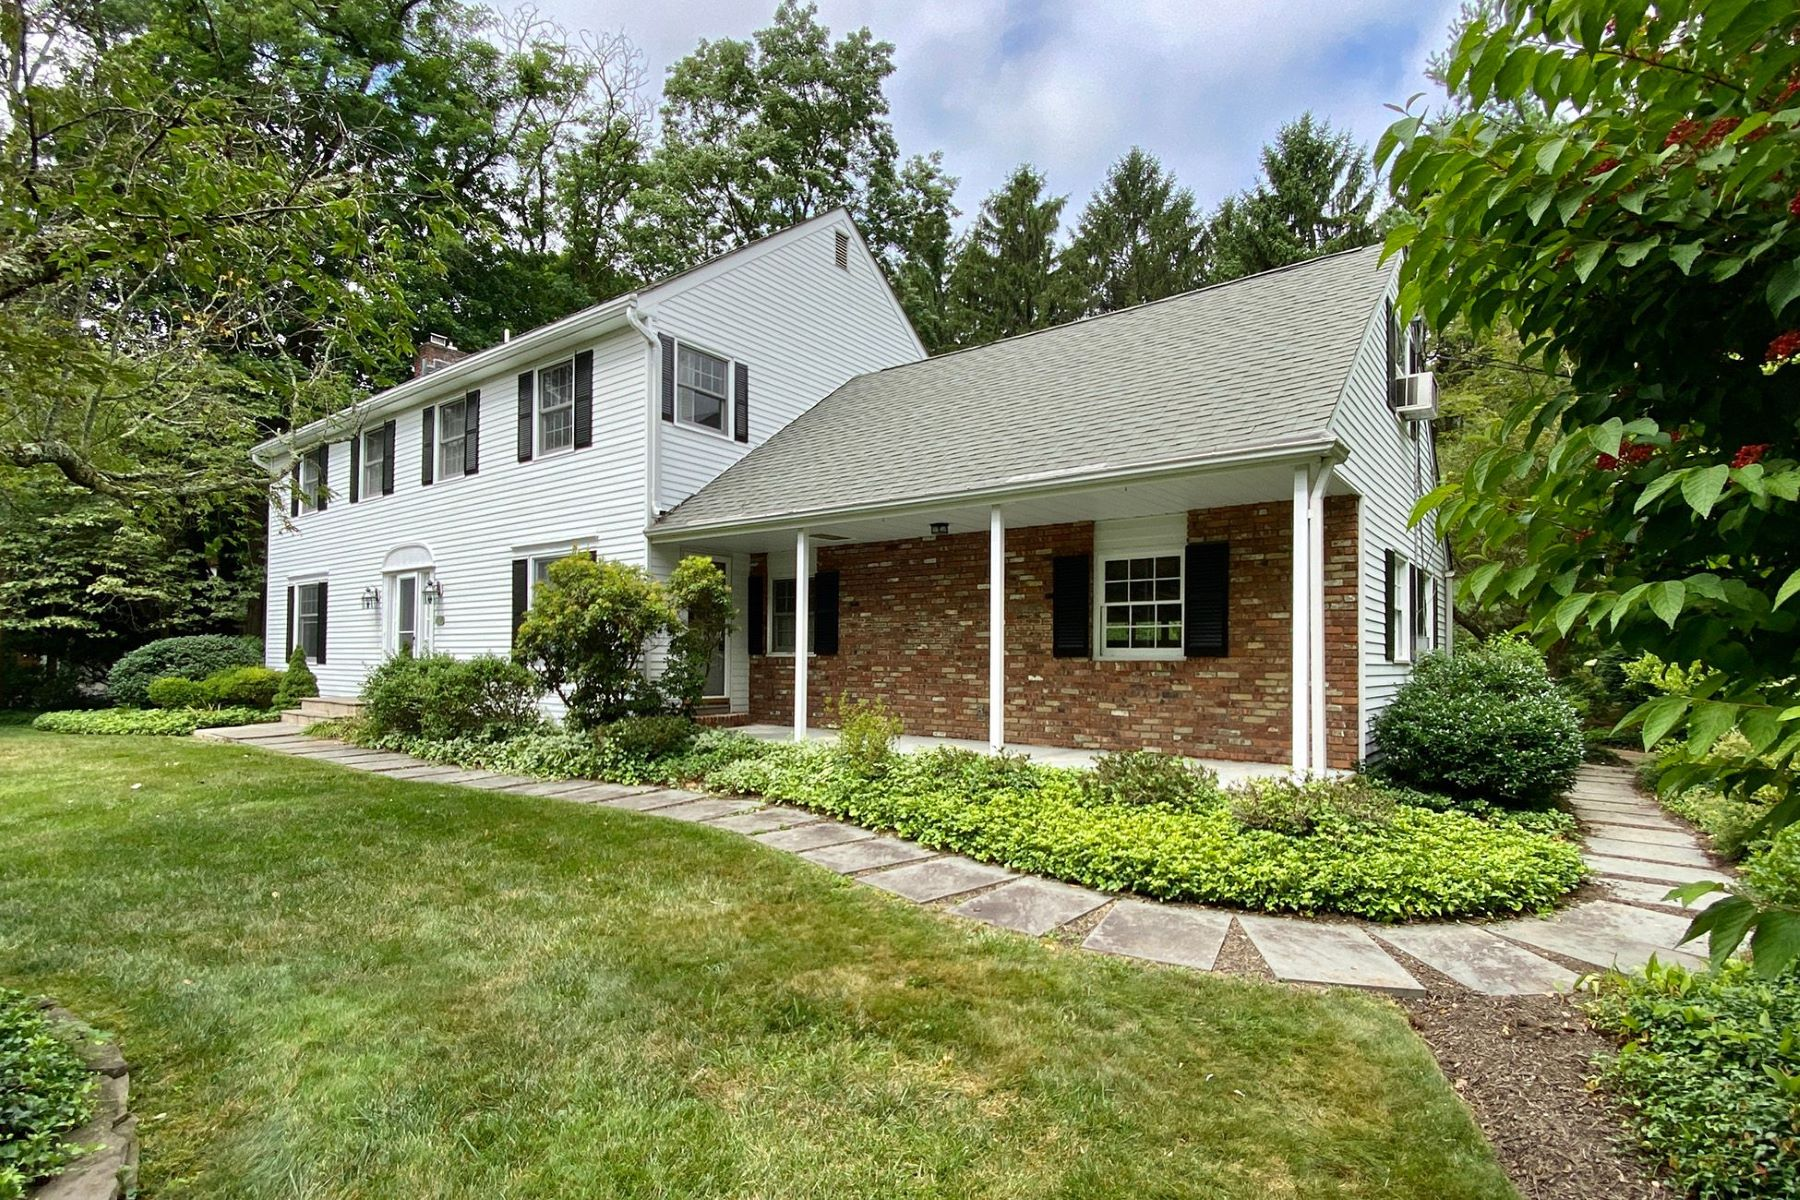 Single Family Homes for Sale at Beautiful Colonial-Style Home in Coveted Riverside 332 Riverside Drive, Princeton, New Jersey 08540 United States